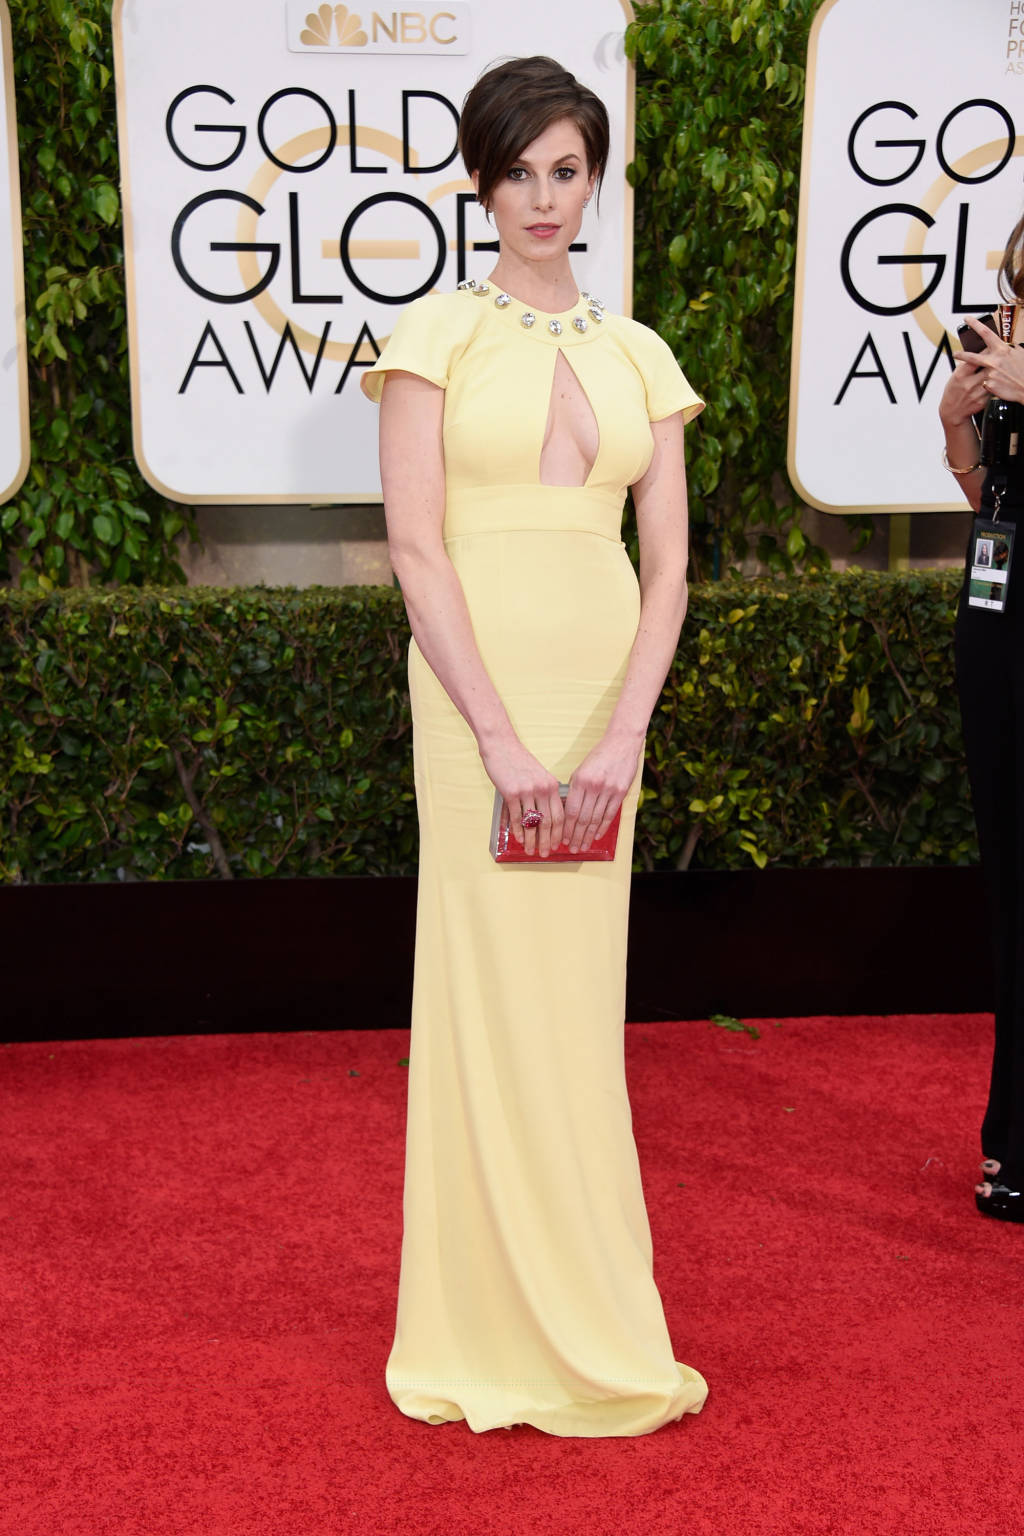 Golden Globes 2015 fashion - Elettra Rossellini-Wiedemann